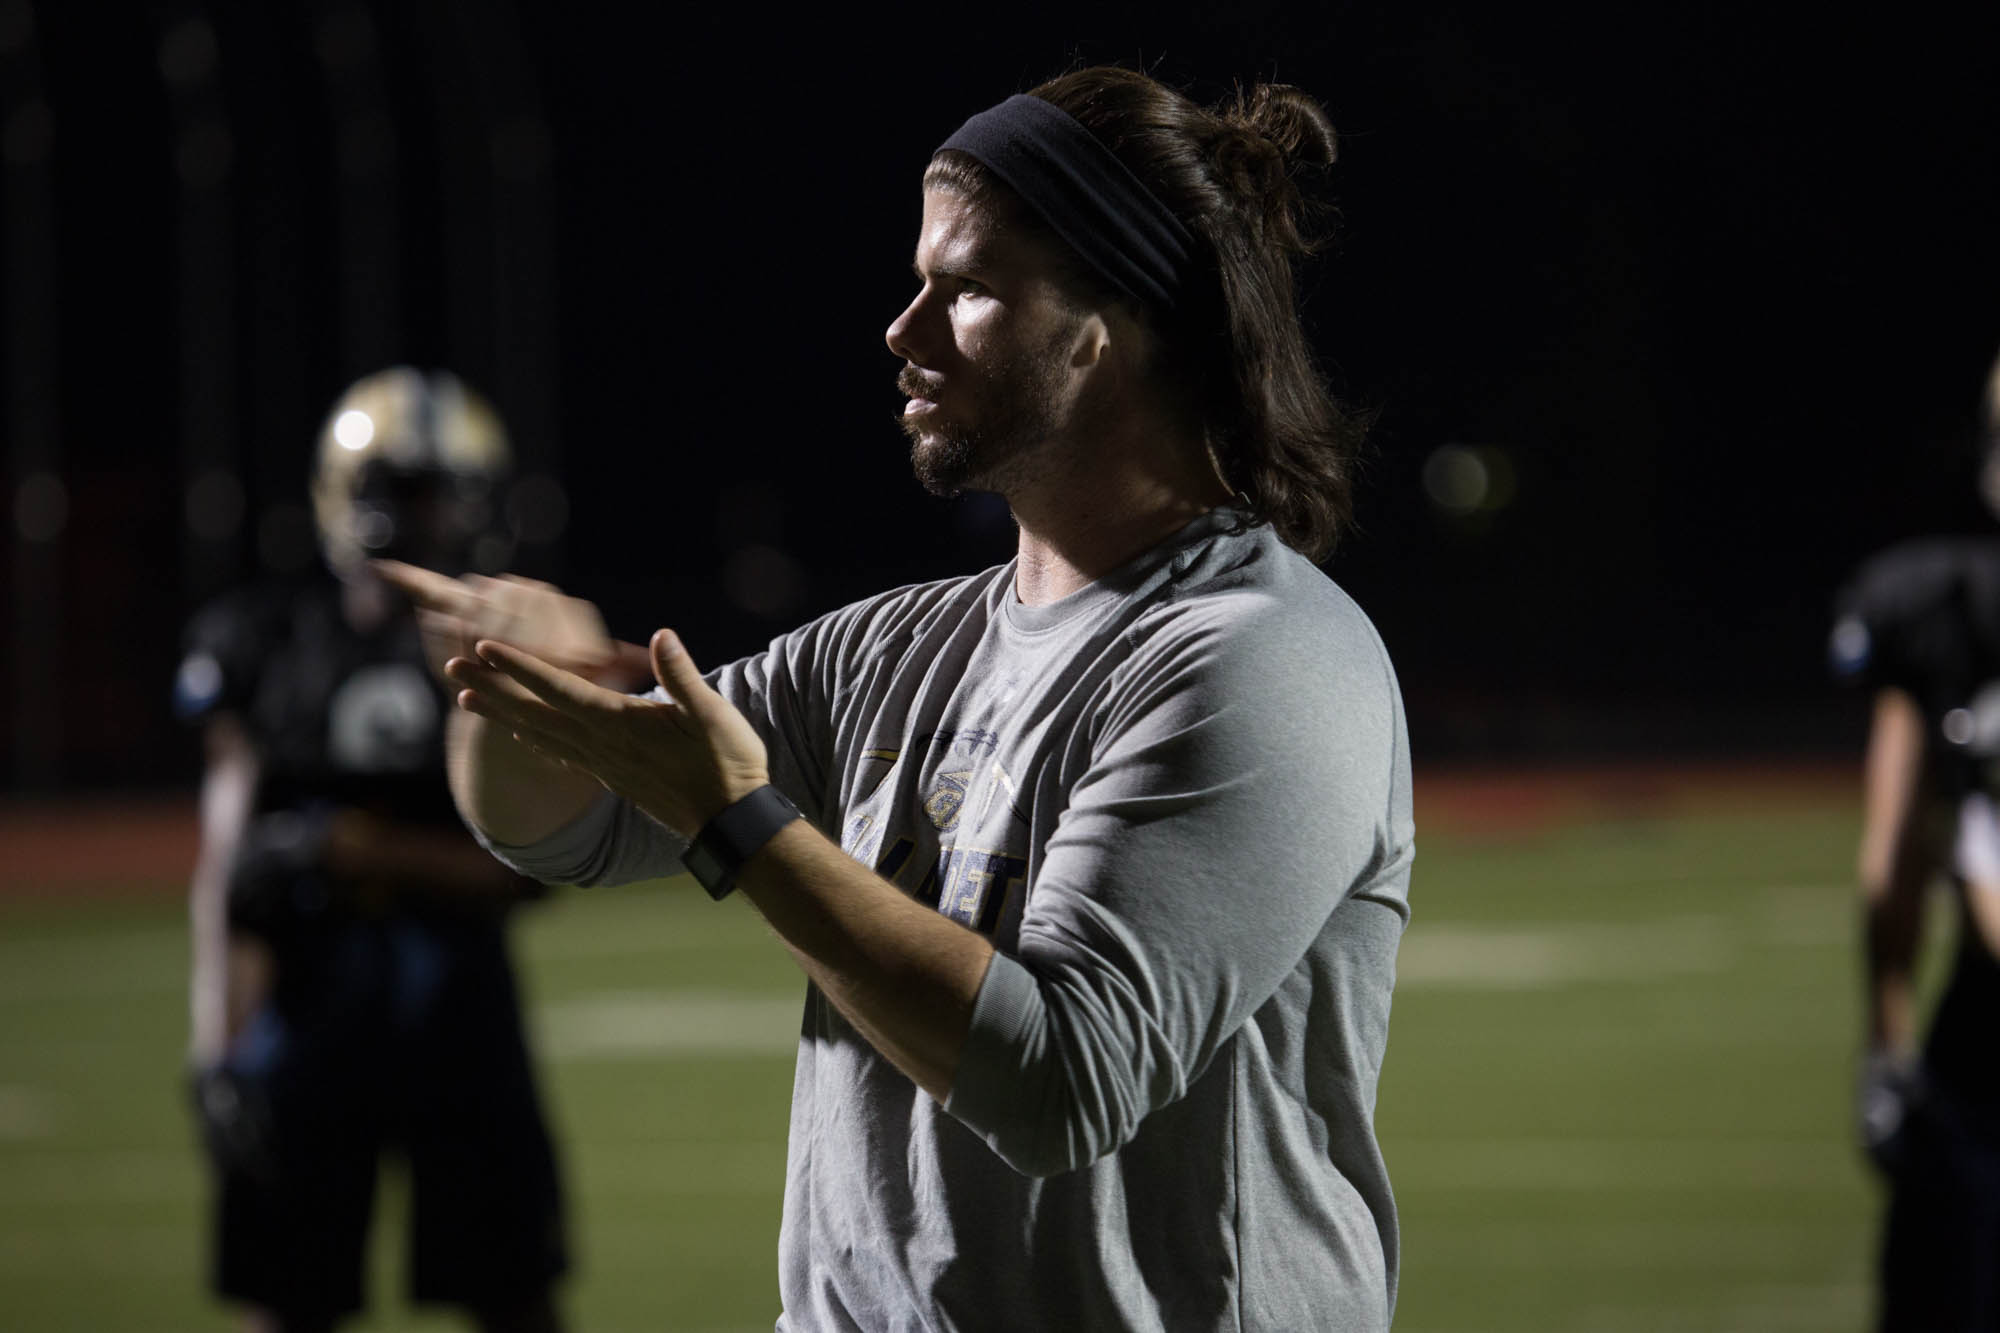 Shelby Bean, 25, signs a play to his linebackers during practice September 14, 2016 at Gallaudet University.